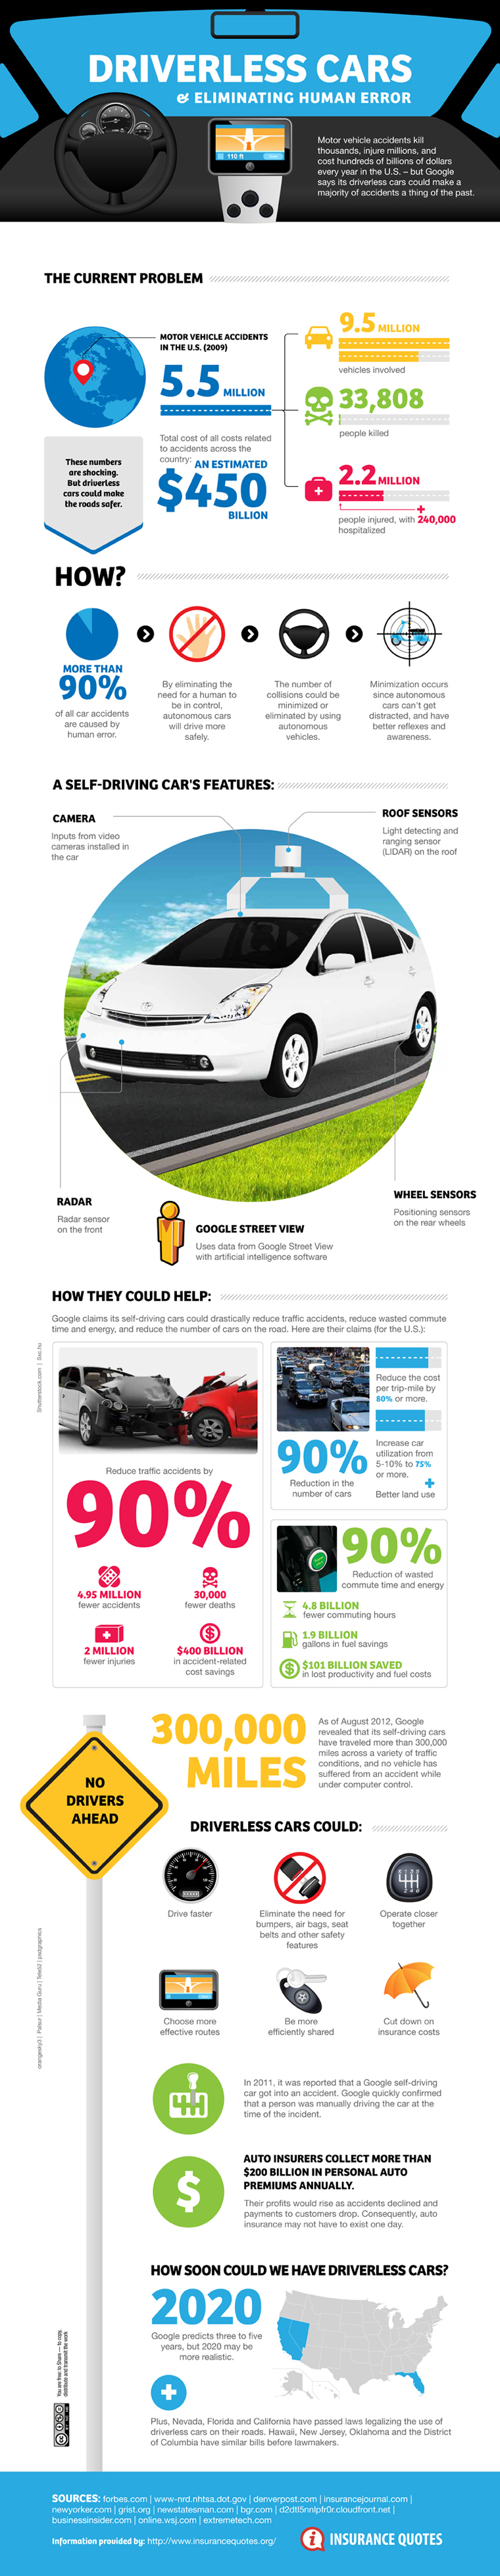 Infographic driver-free cars